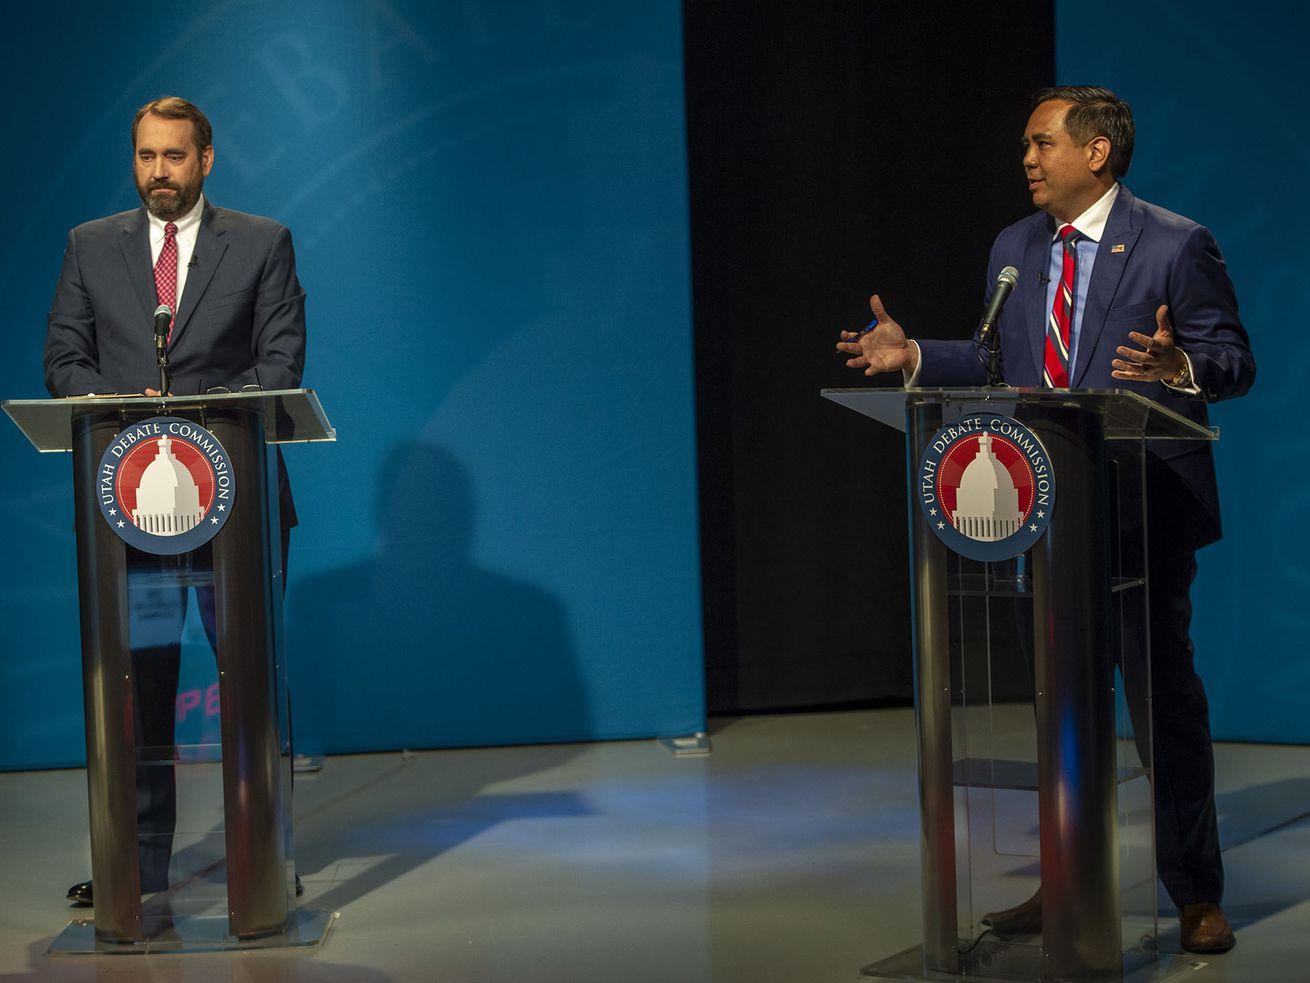 Utah County Attorney David Leavitt, left, listens as Utah Attorney General Sean Reyes speaks during the Utah attorney general Republican primary debate at the PBS Utah studios in on Tuesday, June 2, 2020.